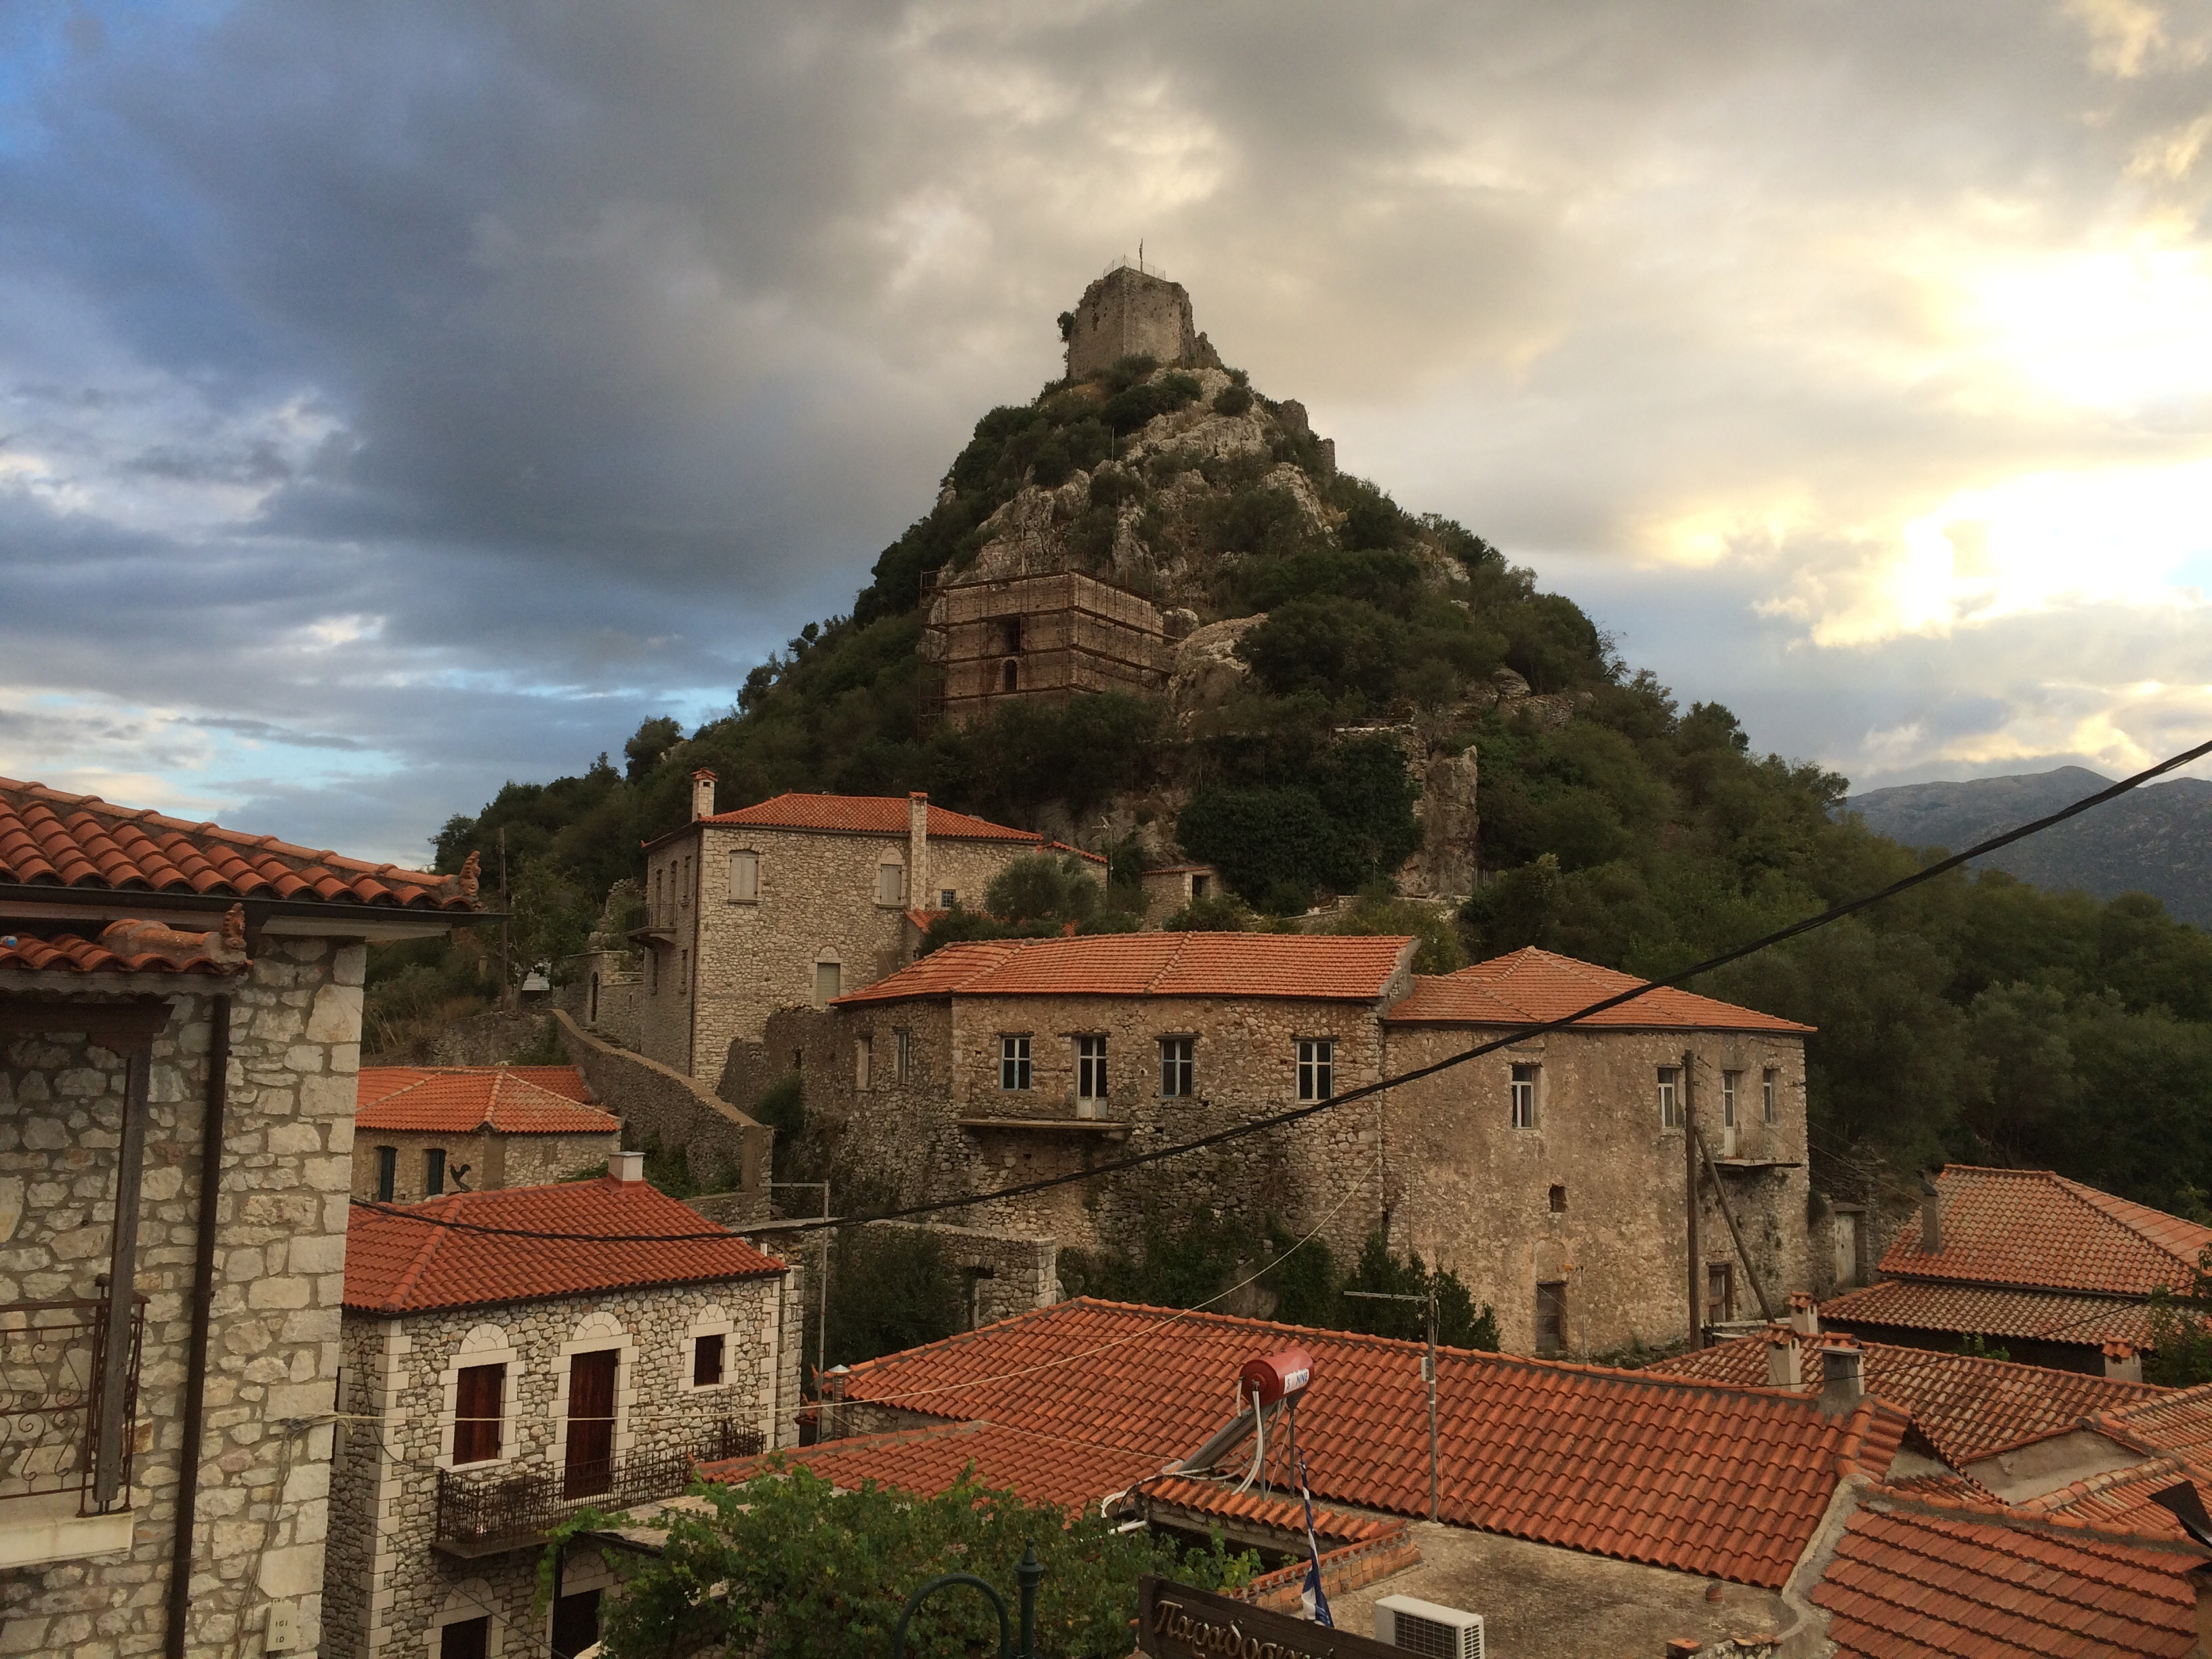 Mystras, Greece. 2015 – Michael and Pams Travels